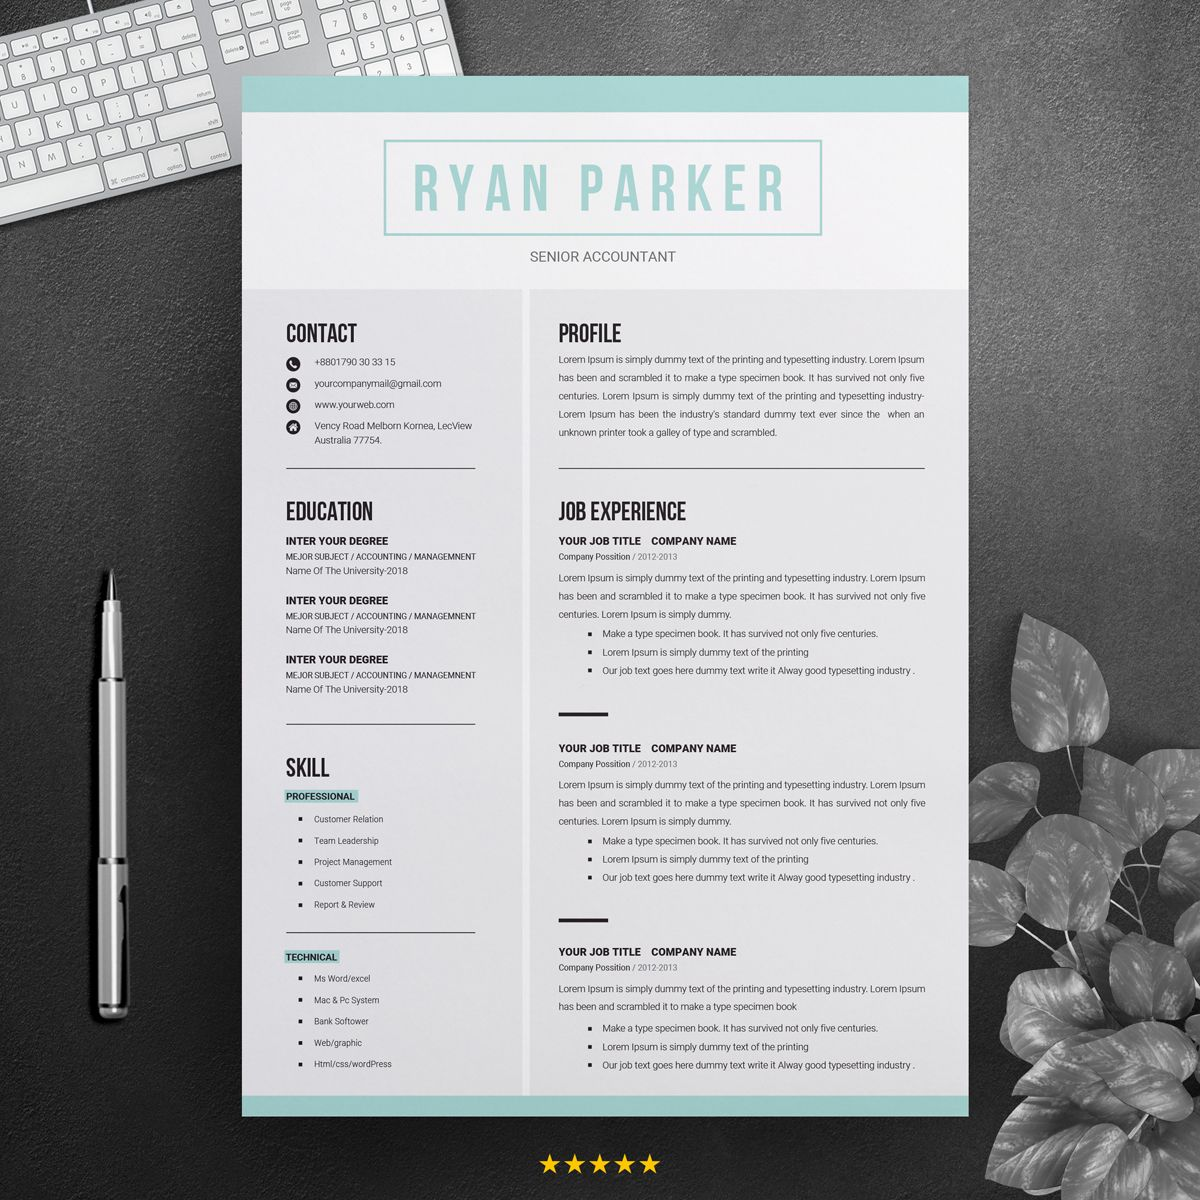 Ryan Parker Professional Resume Template 71464 (With